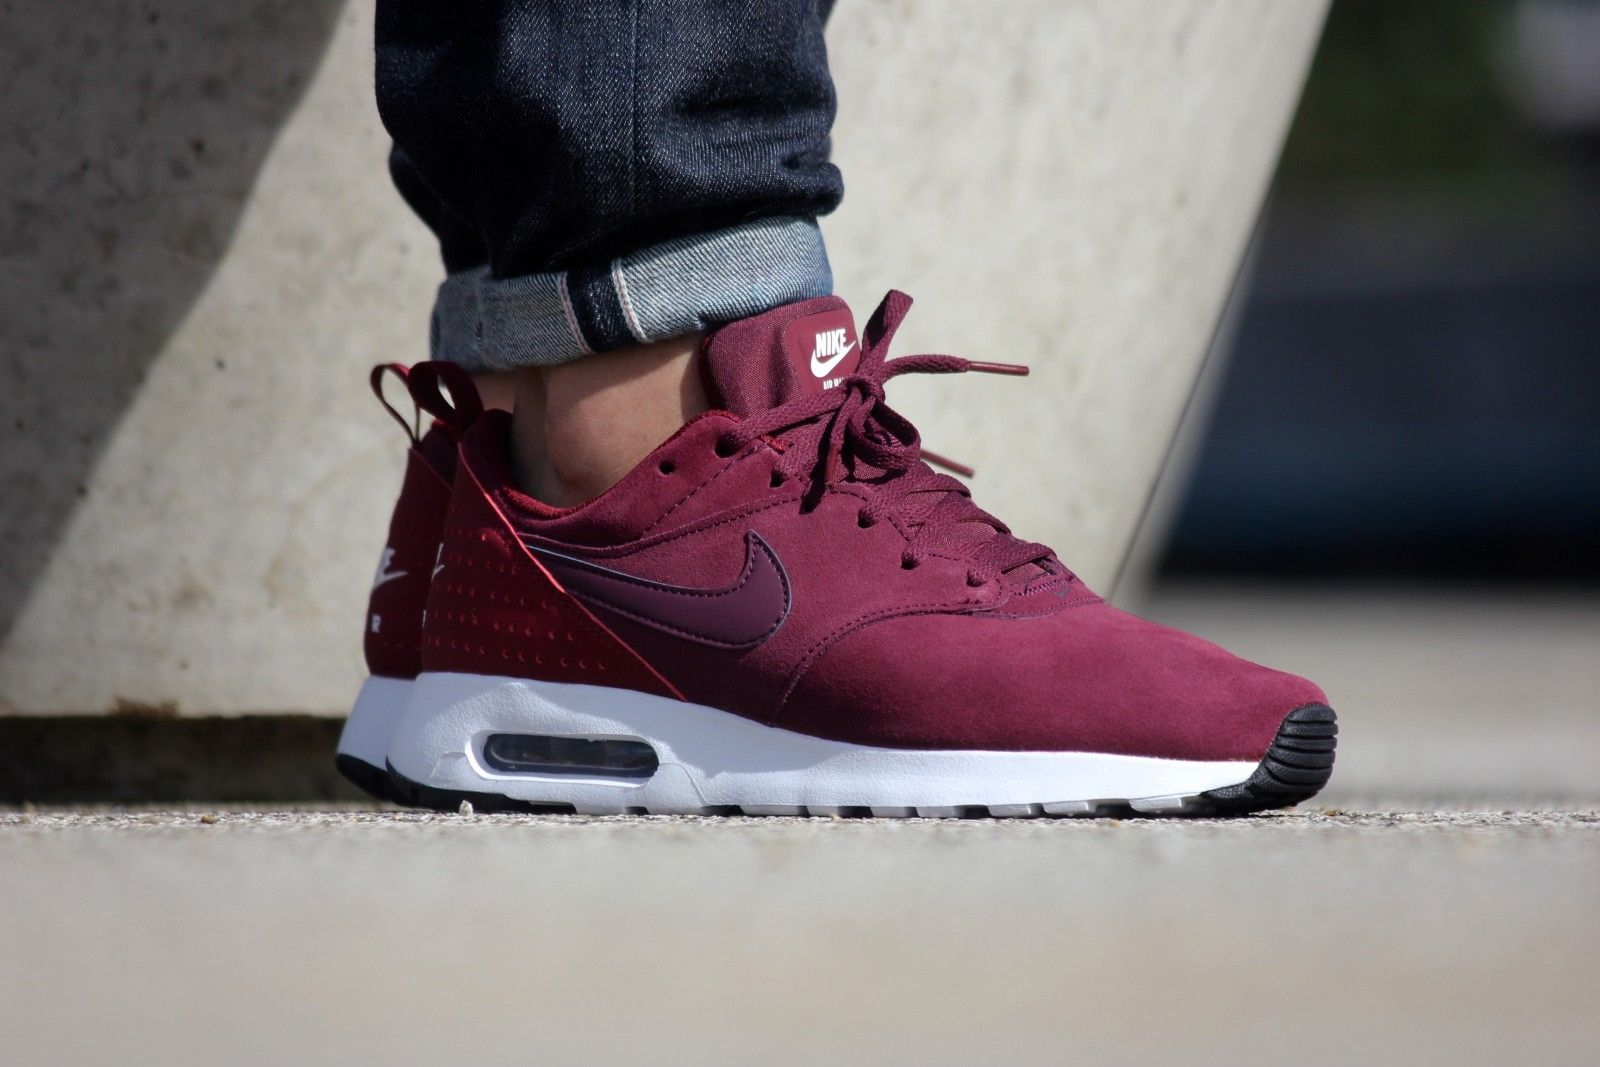 4a665a6b76 Nike Air Max Tavas LTR Night Maroon/Team Red-Sail - 802611-602 ...